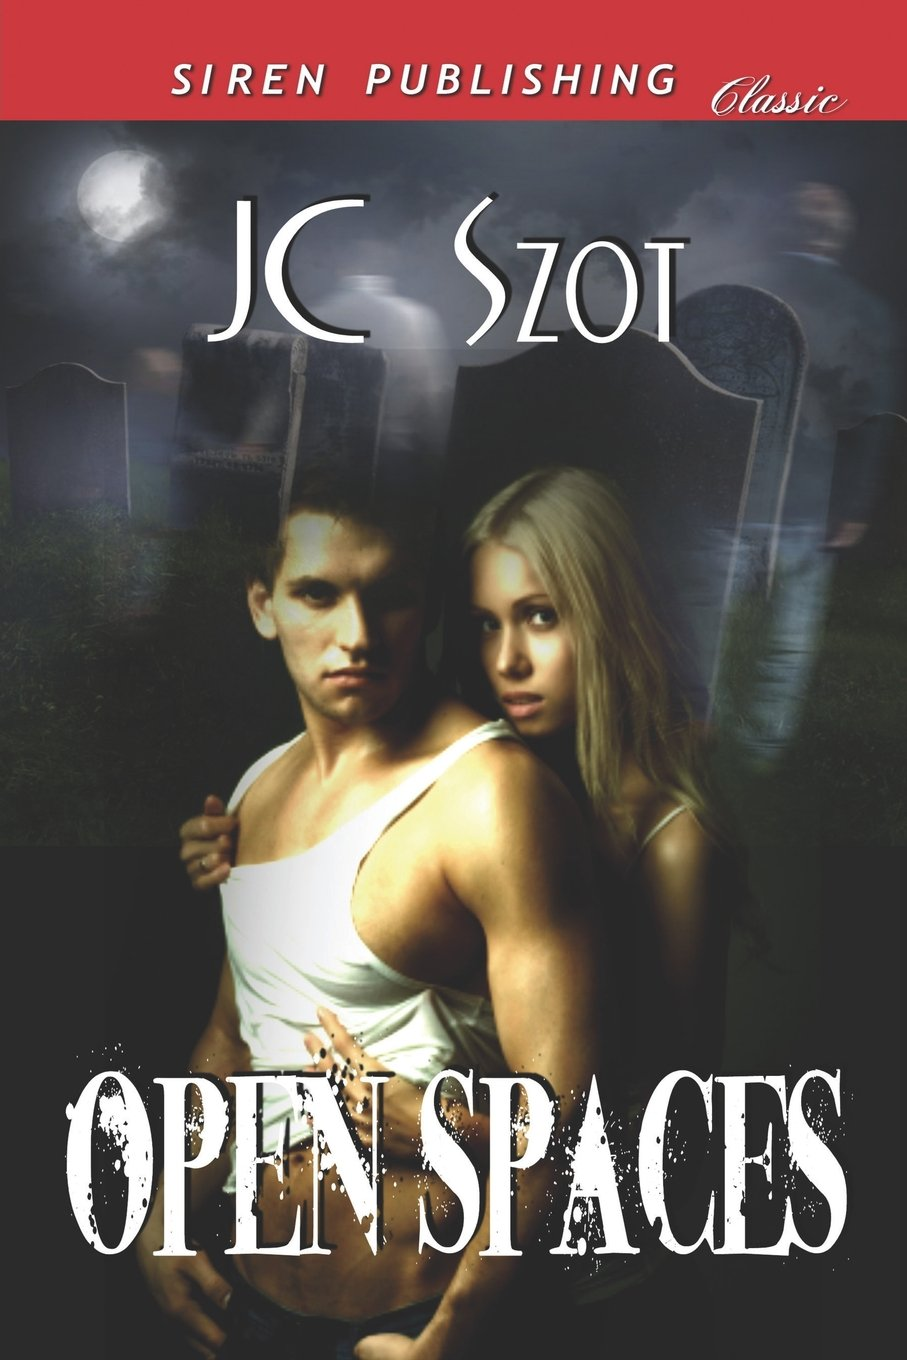 Open Spaces (Siren Publishing Classic) Paperback – December 7, 2011